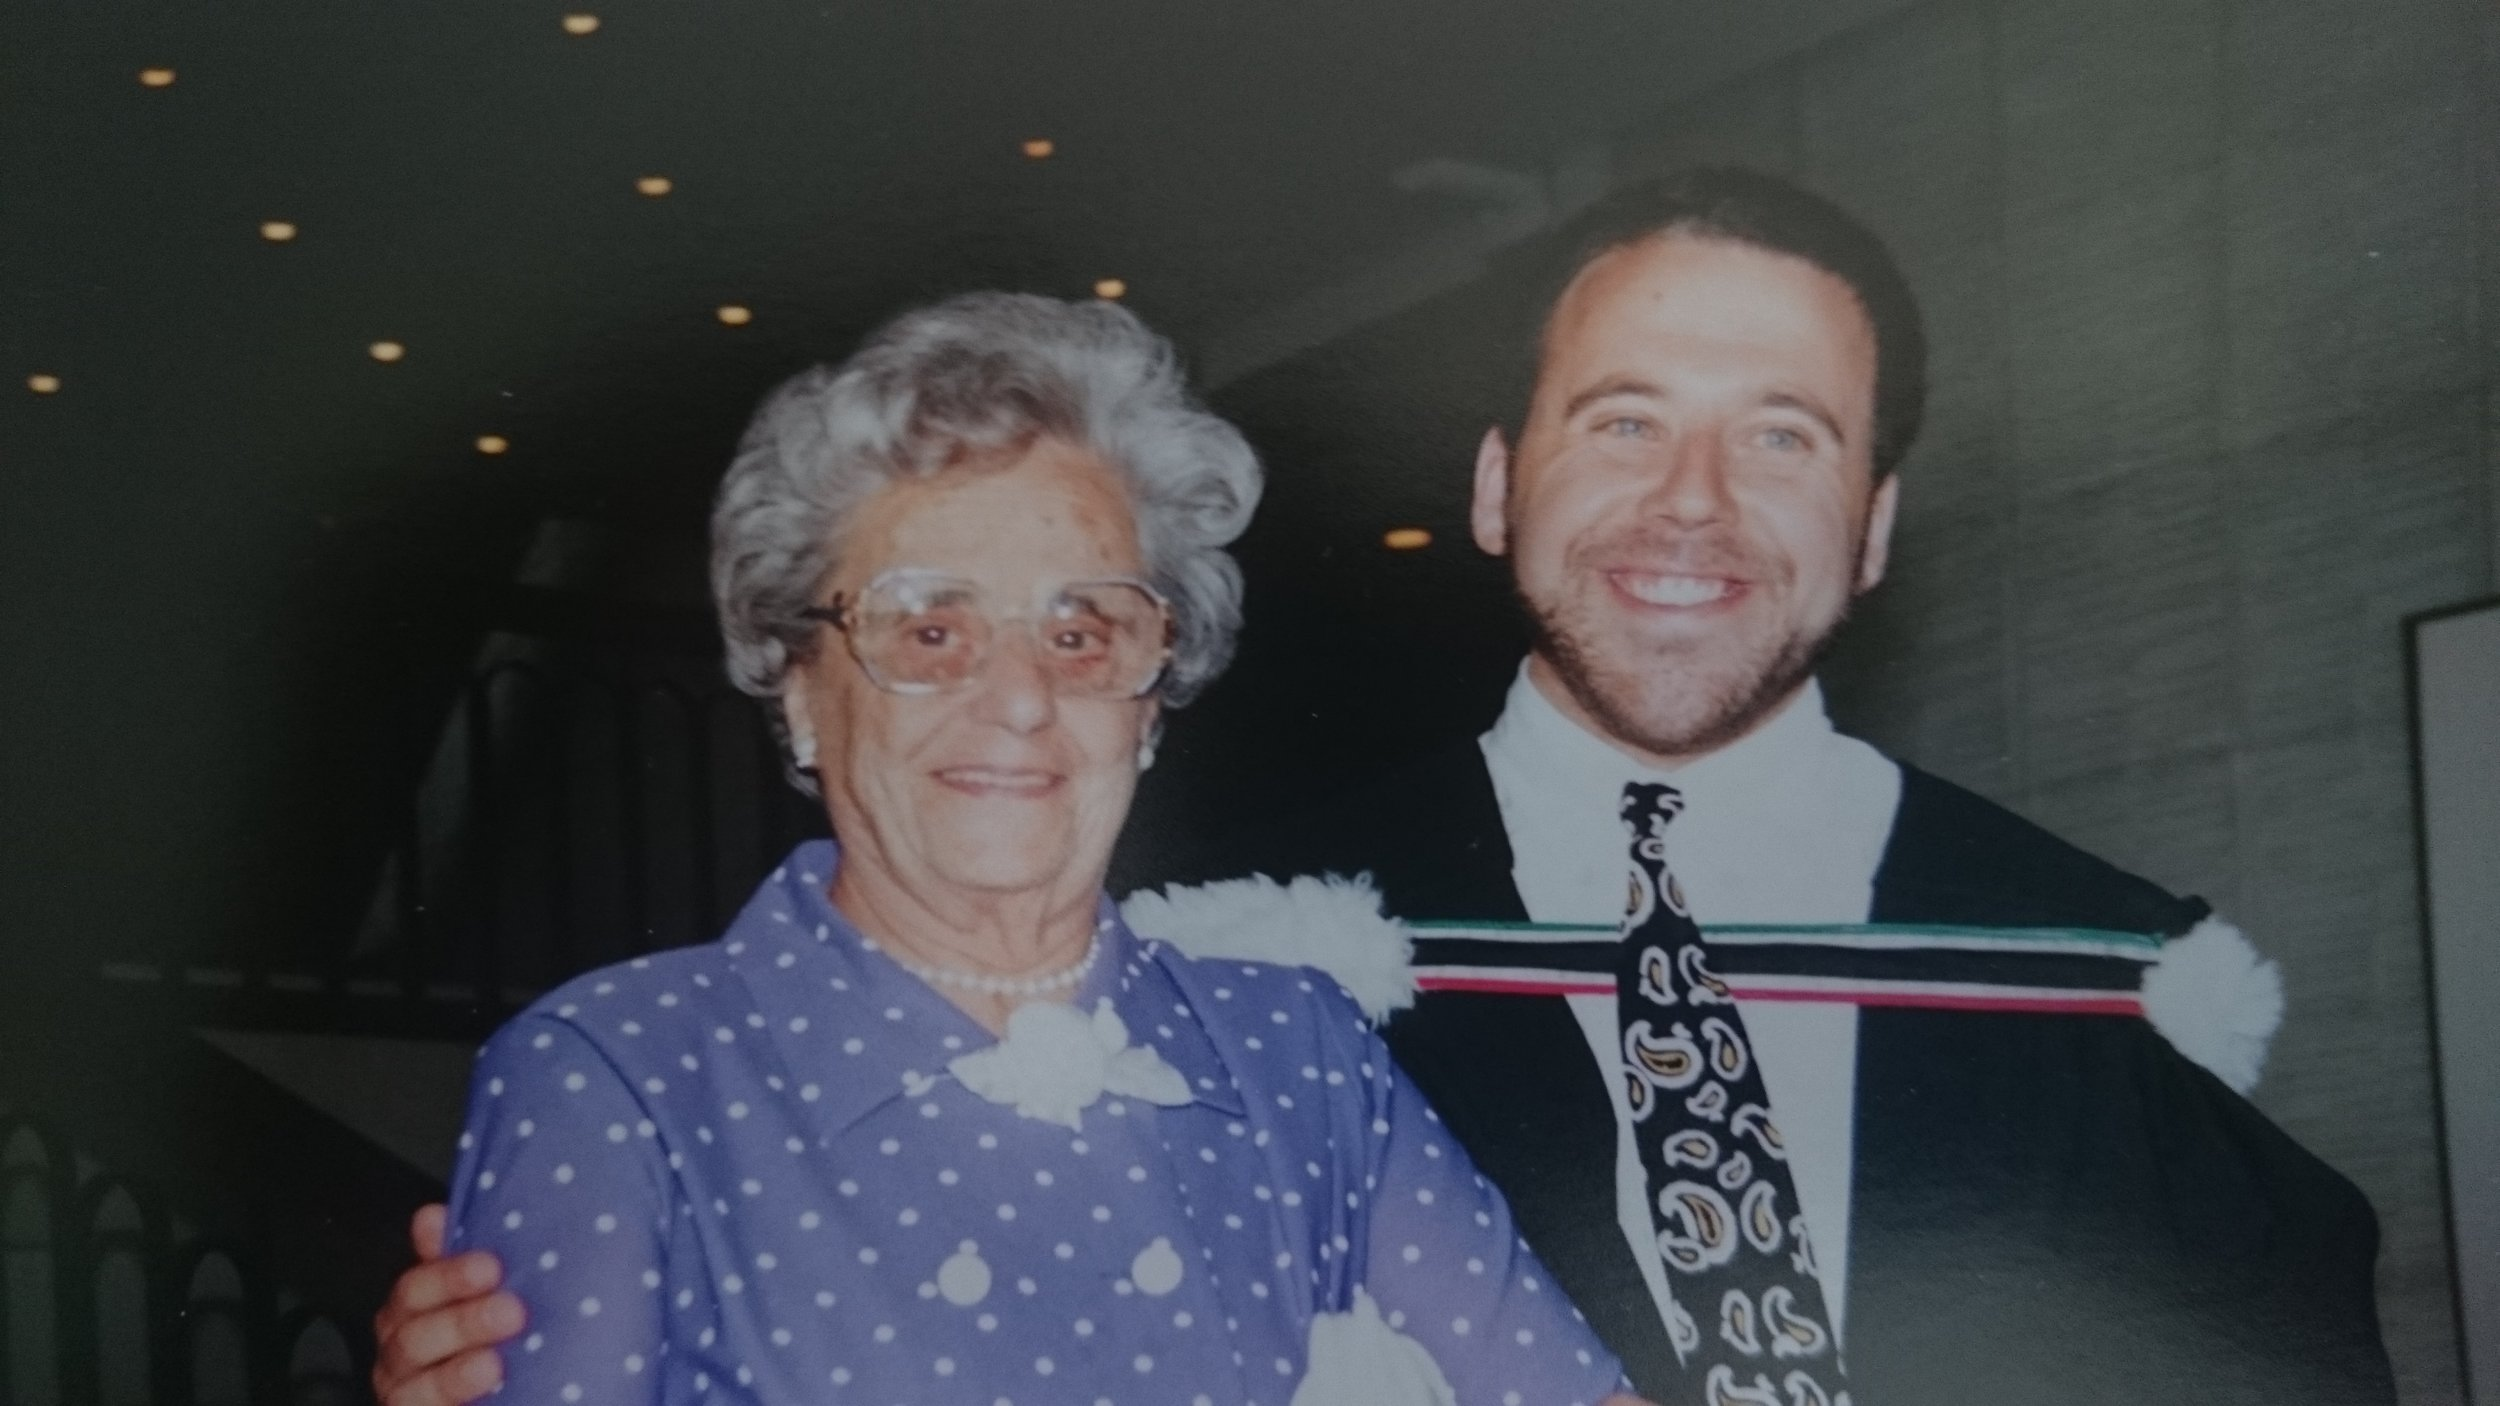 Robert and his very proud grandmother at convocation in 1992.